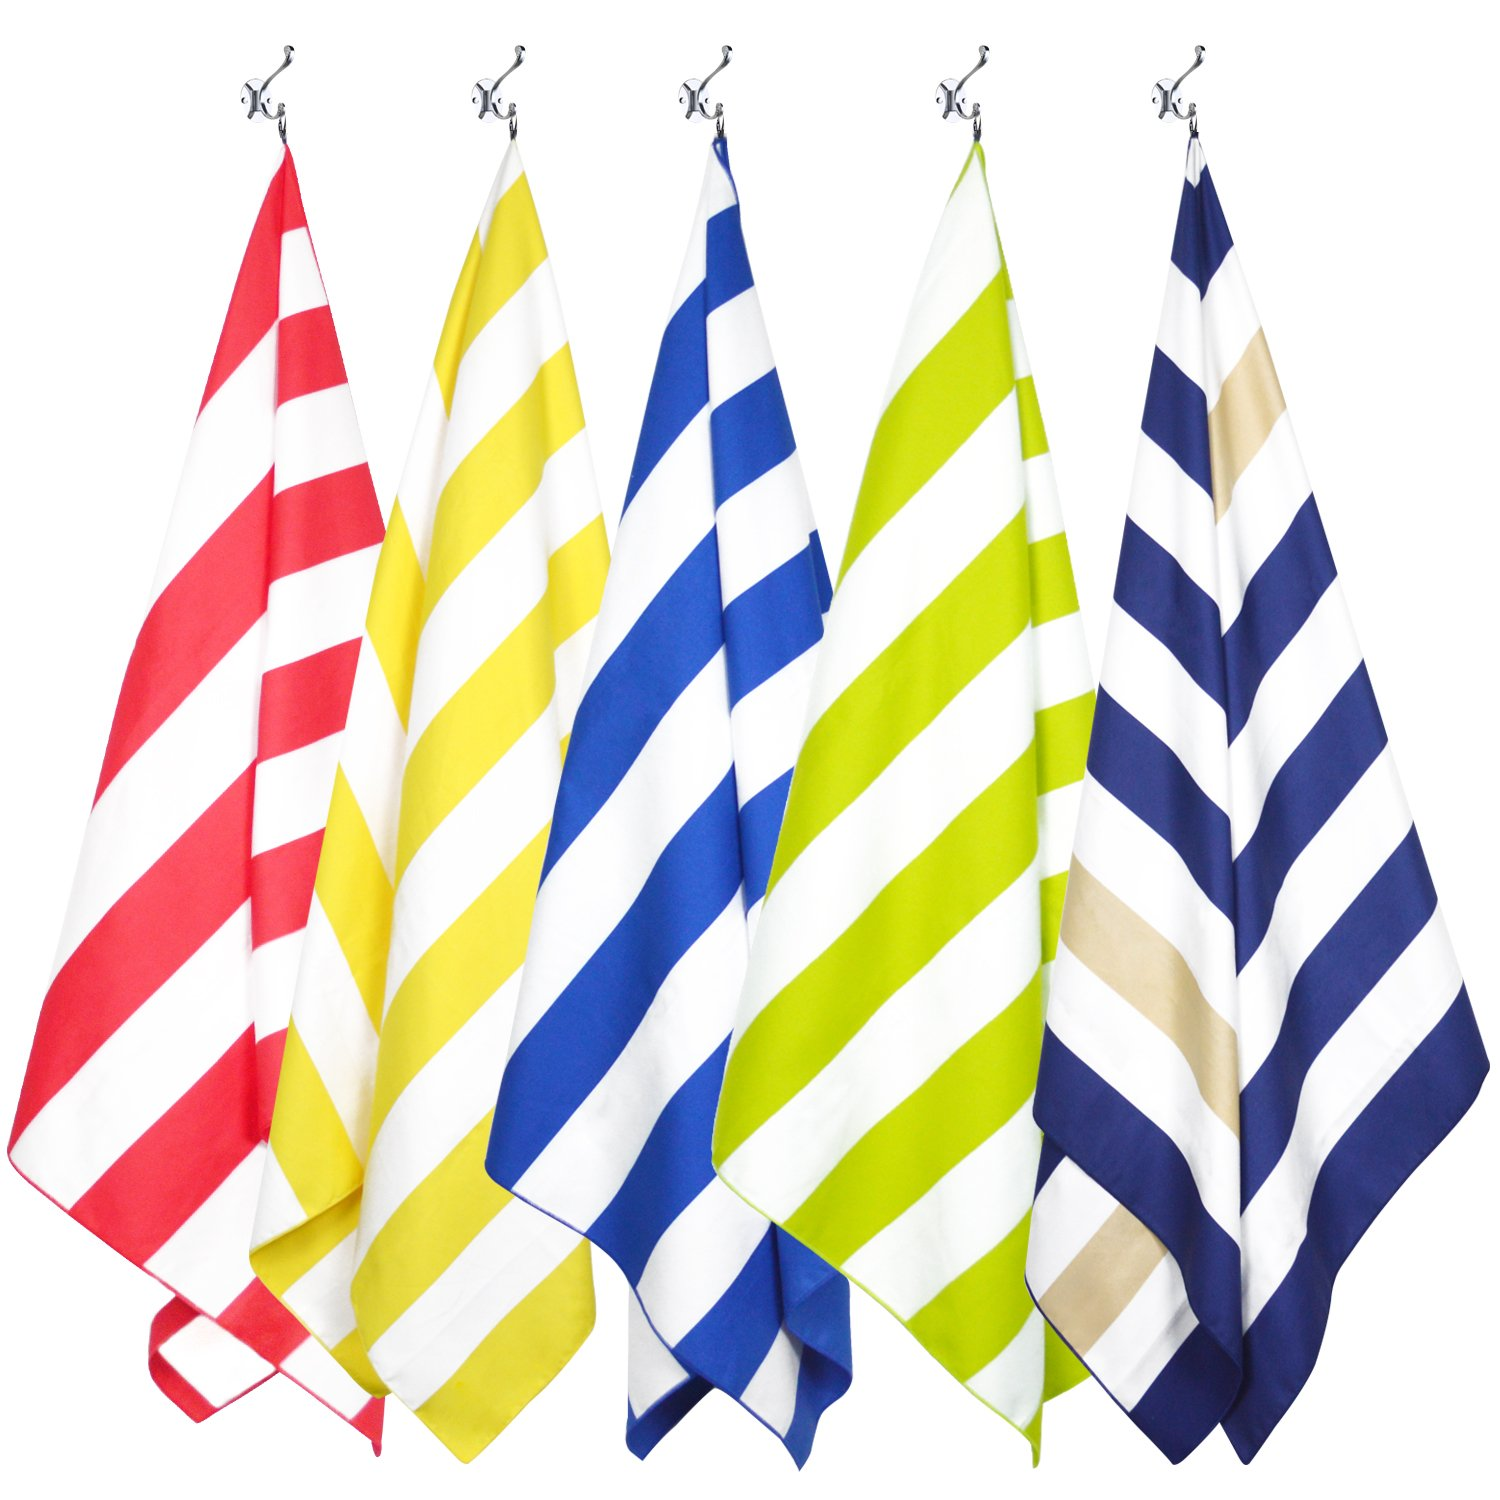 Microfiber Towel for Travel & Beach, Quick Dry Gym, Yoga, Sports, Swim and Bath Towel - Large Size, Compact, Lightweight with Mesh Carry Pouch - Cabana Stripe Yellow & White (Large 30'' x 60'')